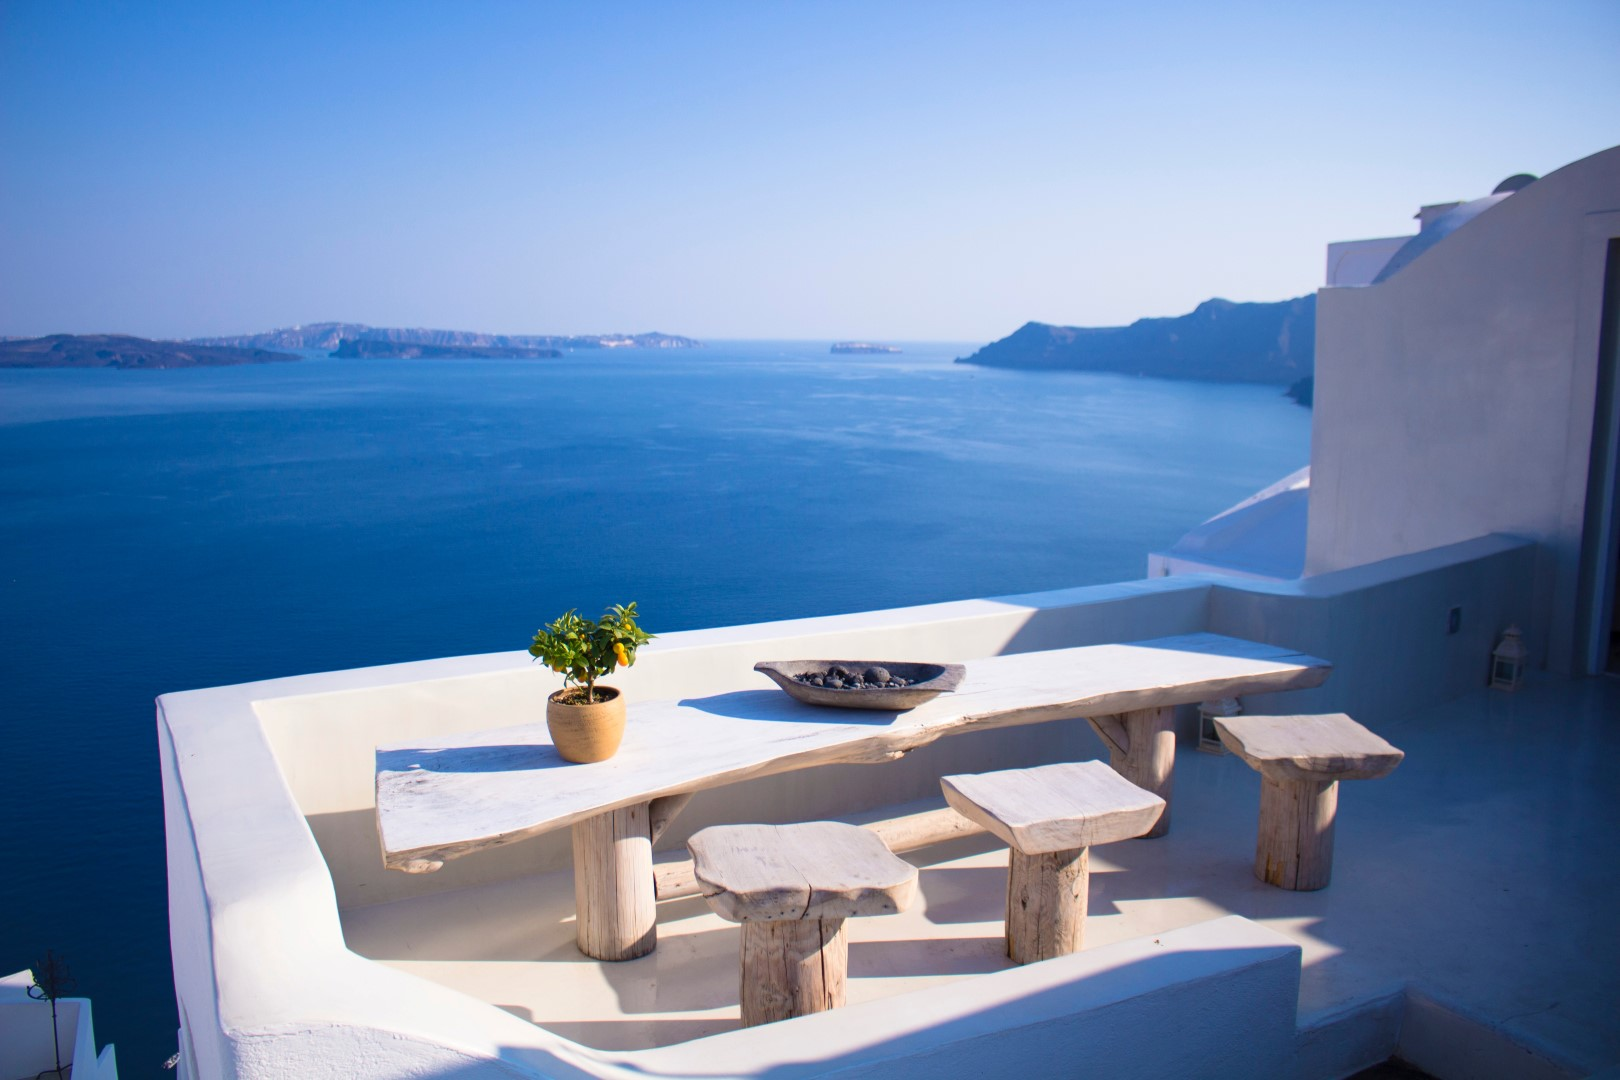 santorini boutique hotel with a terrace overlooking sea